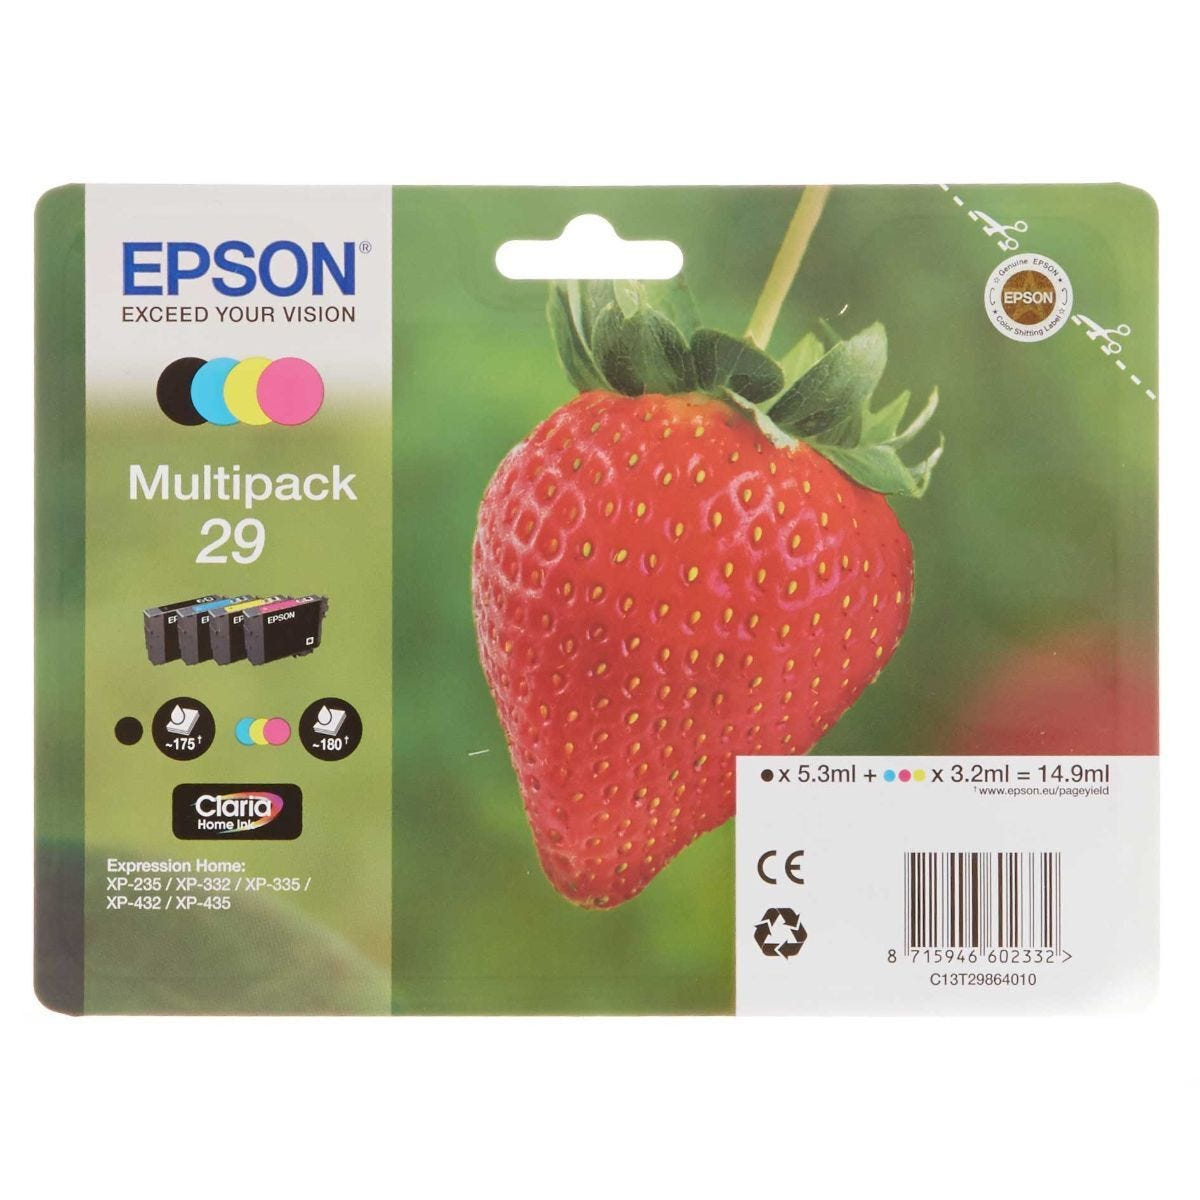 Epson 29 Strawberry Home Ink Cartridge Multipack